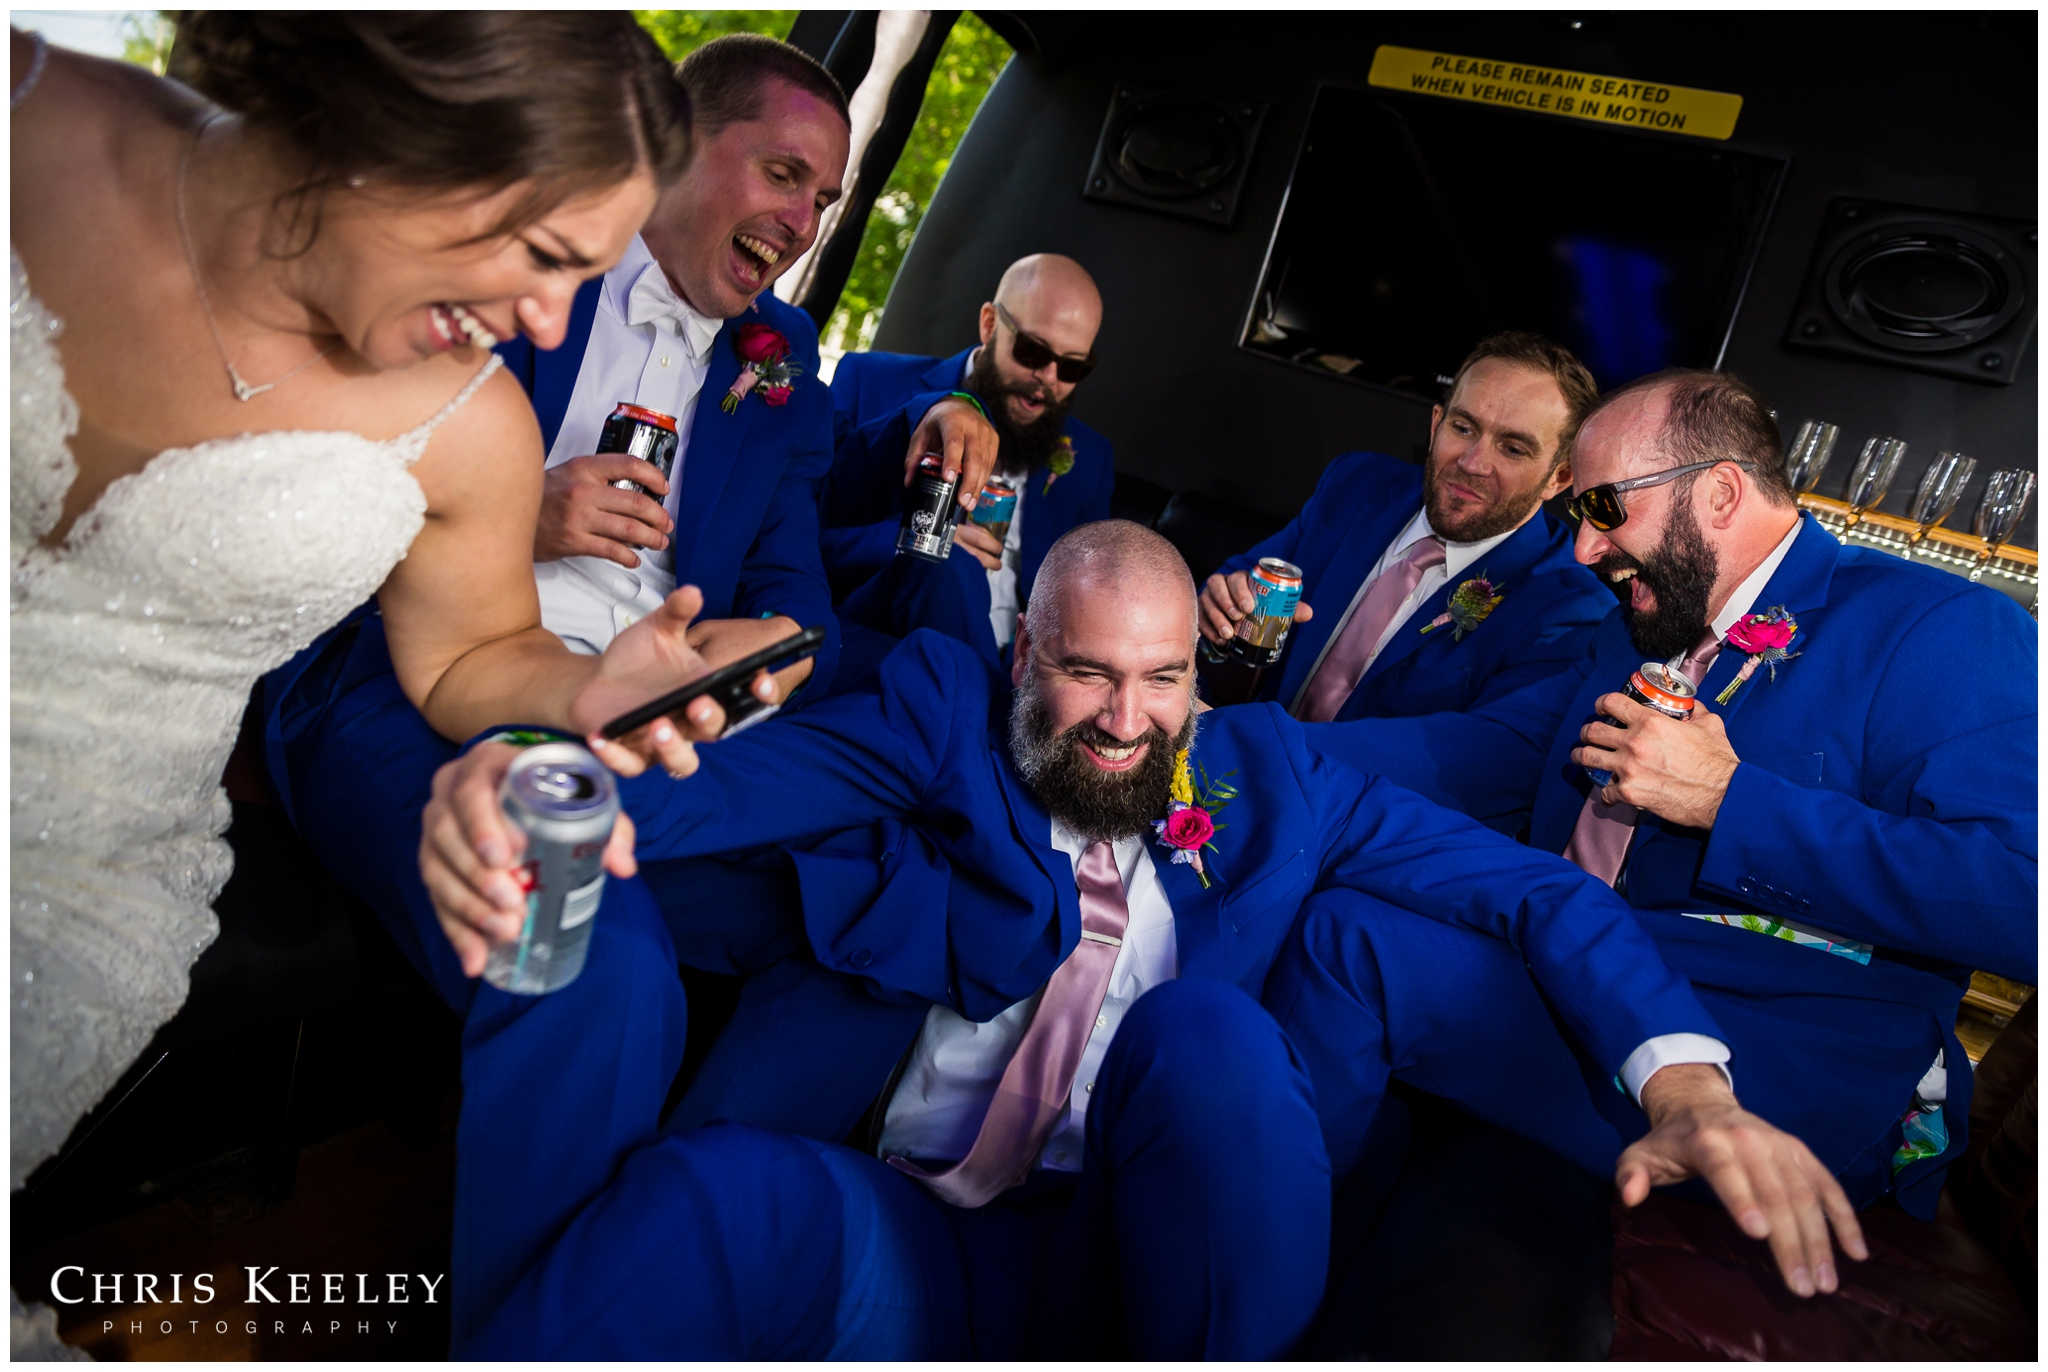 wedding-party-falling-in-party-bus.jpg